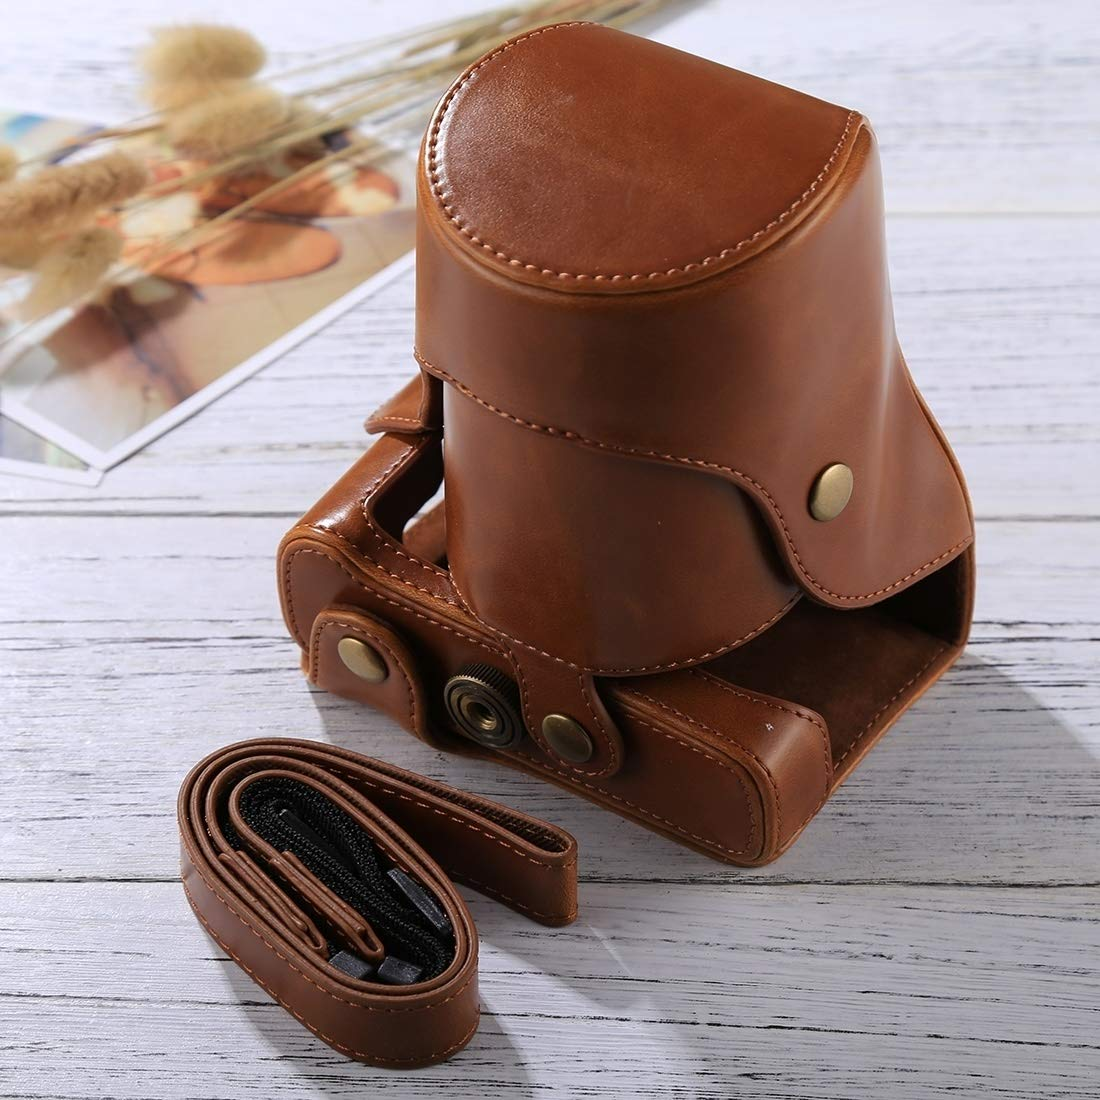 YANTAIANJANE Camera Accessories Full Body Camera PU Leather Case Bag with Strap for FUJIFILM X-E3 Color : Brown Black 18-55mm // XF 23mm Lens